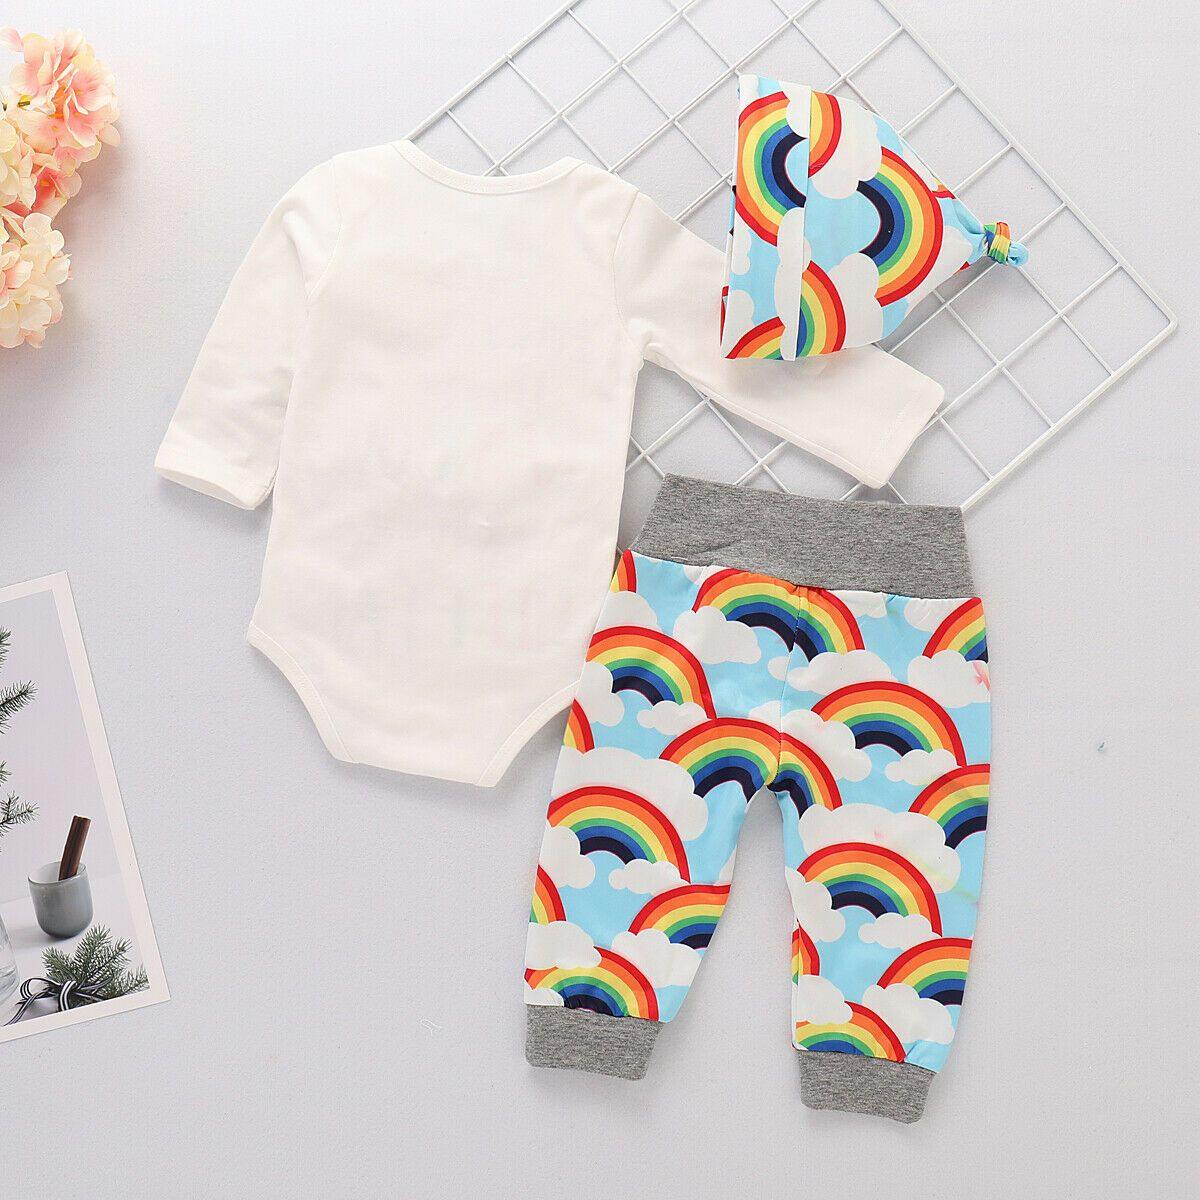 Newborn Baby Rainbow Set